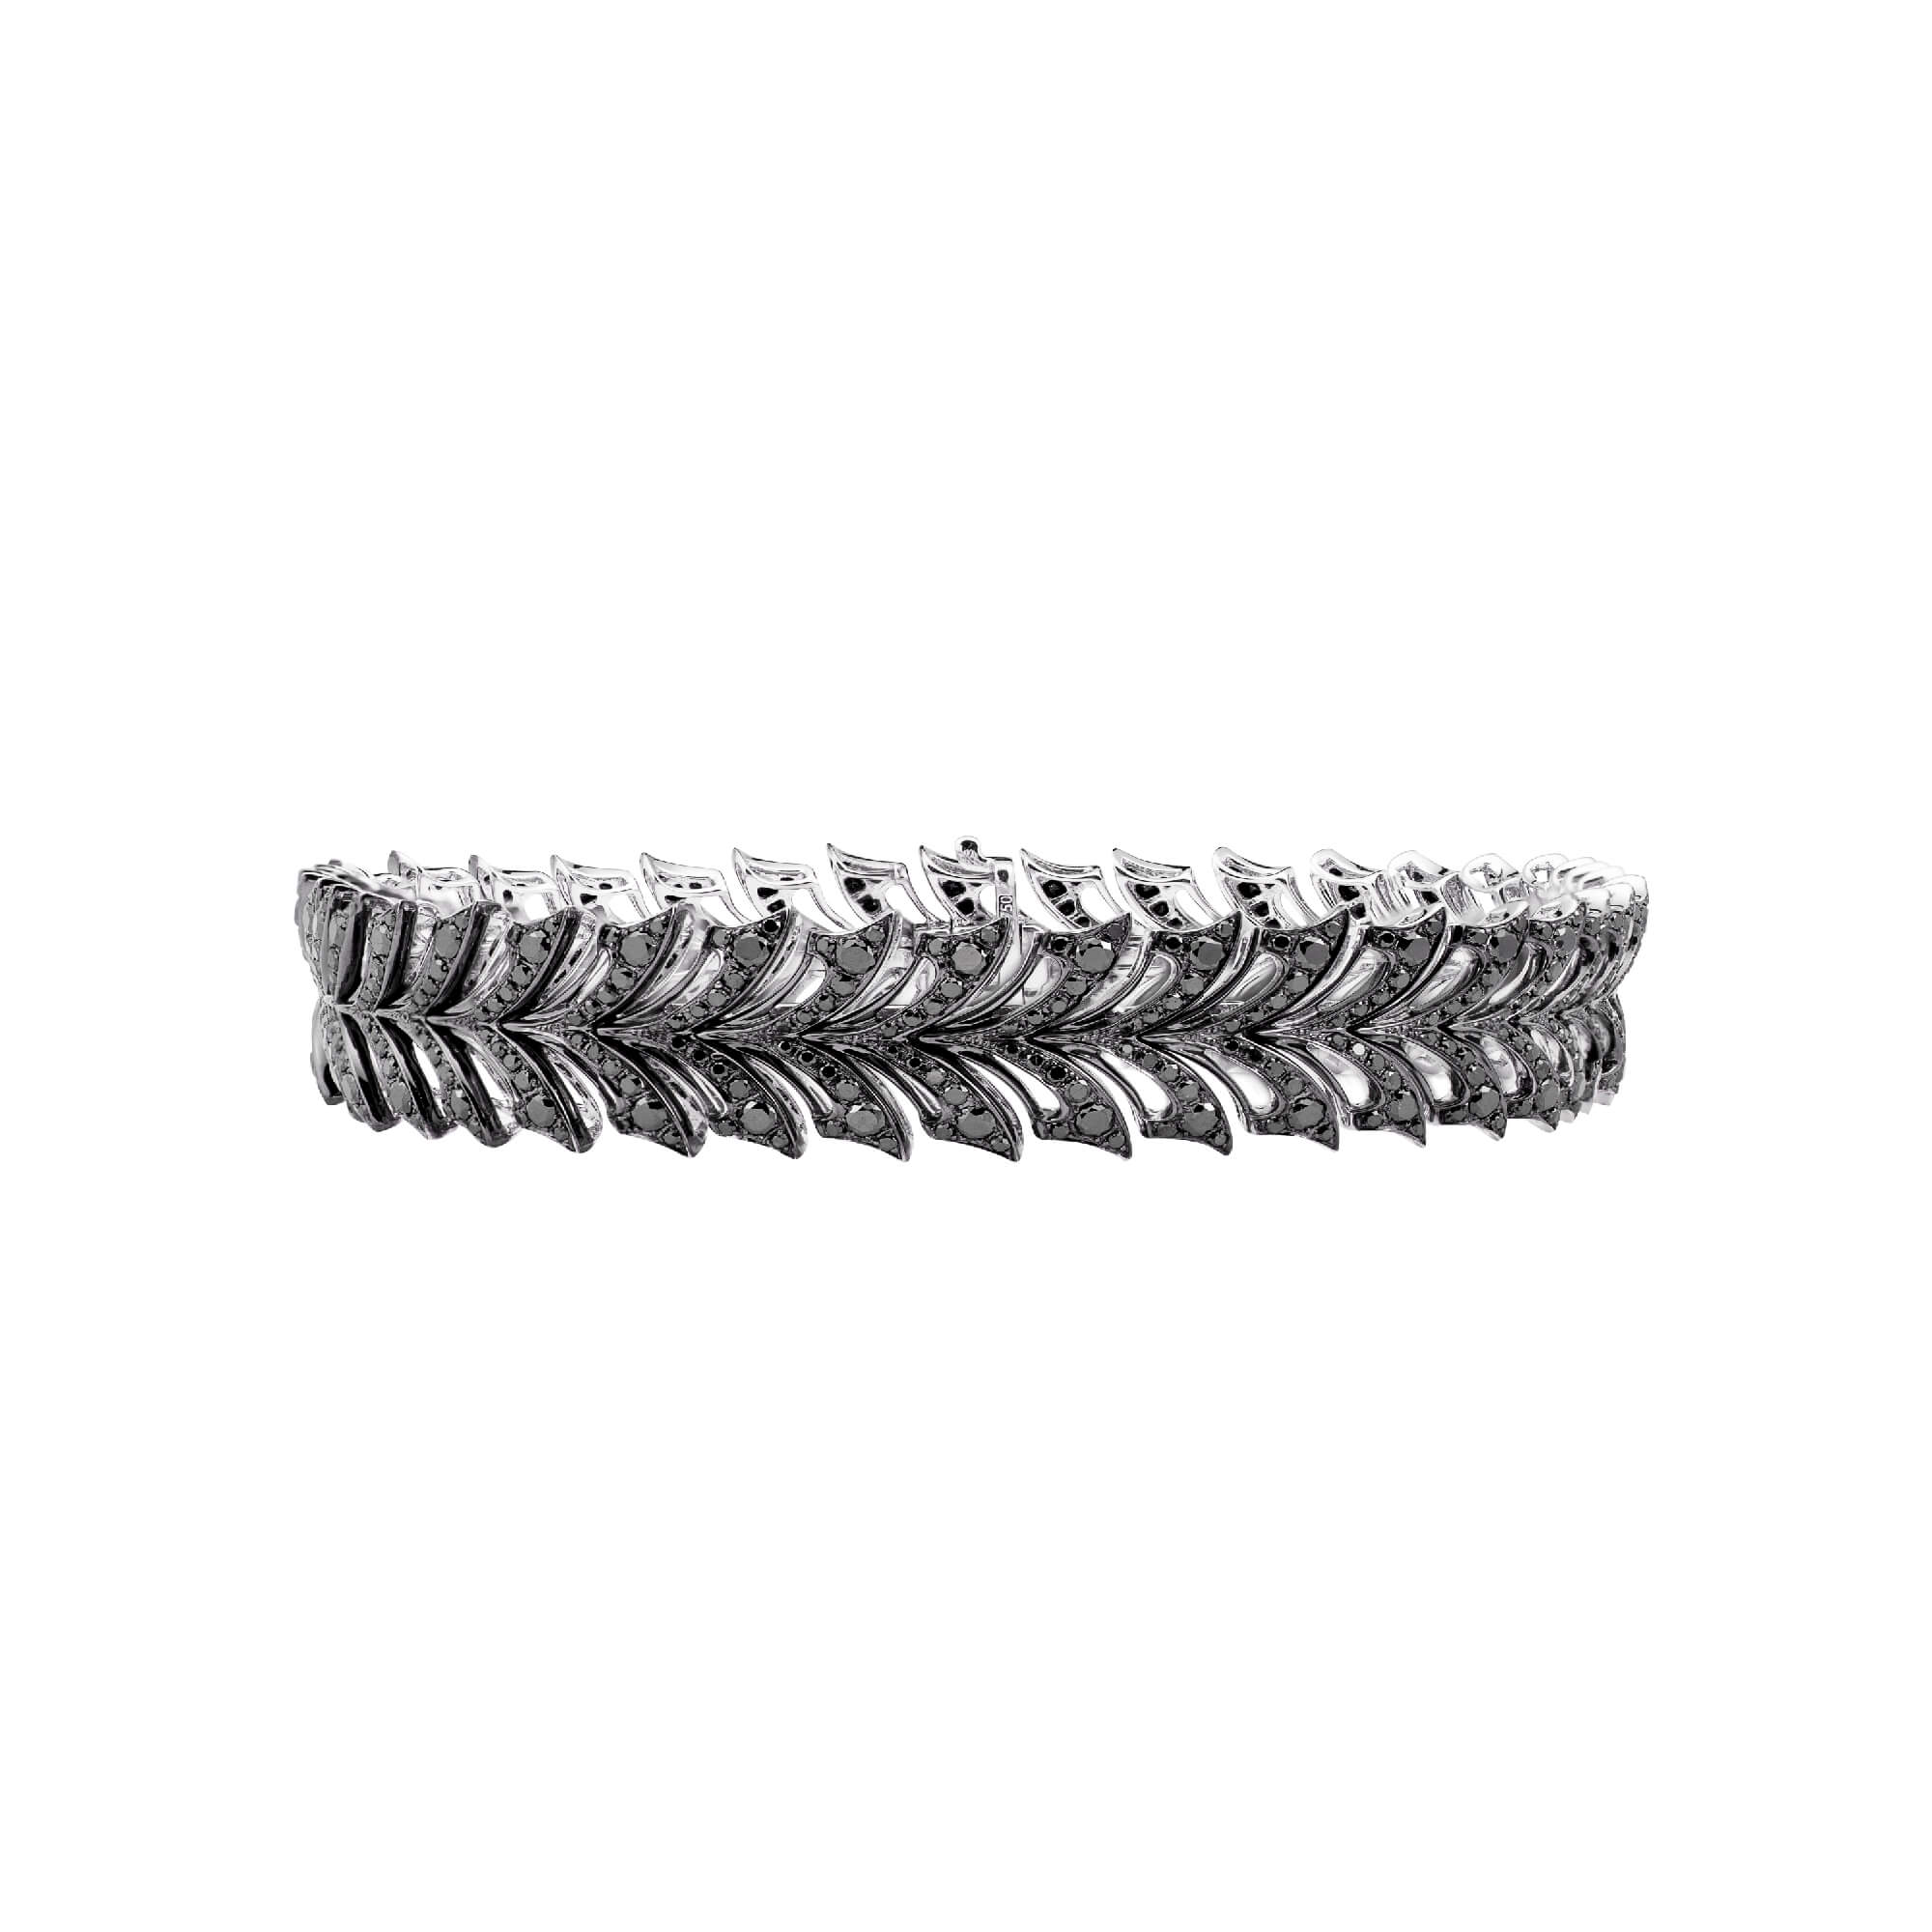 White Gold Small Pavé Bracelet With Black Diamonds | Magnipheasant